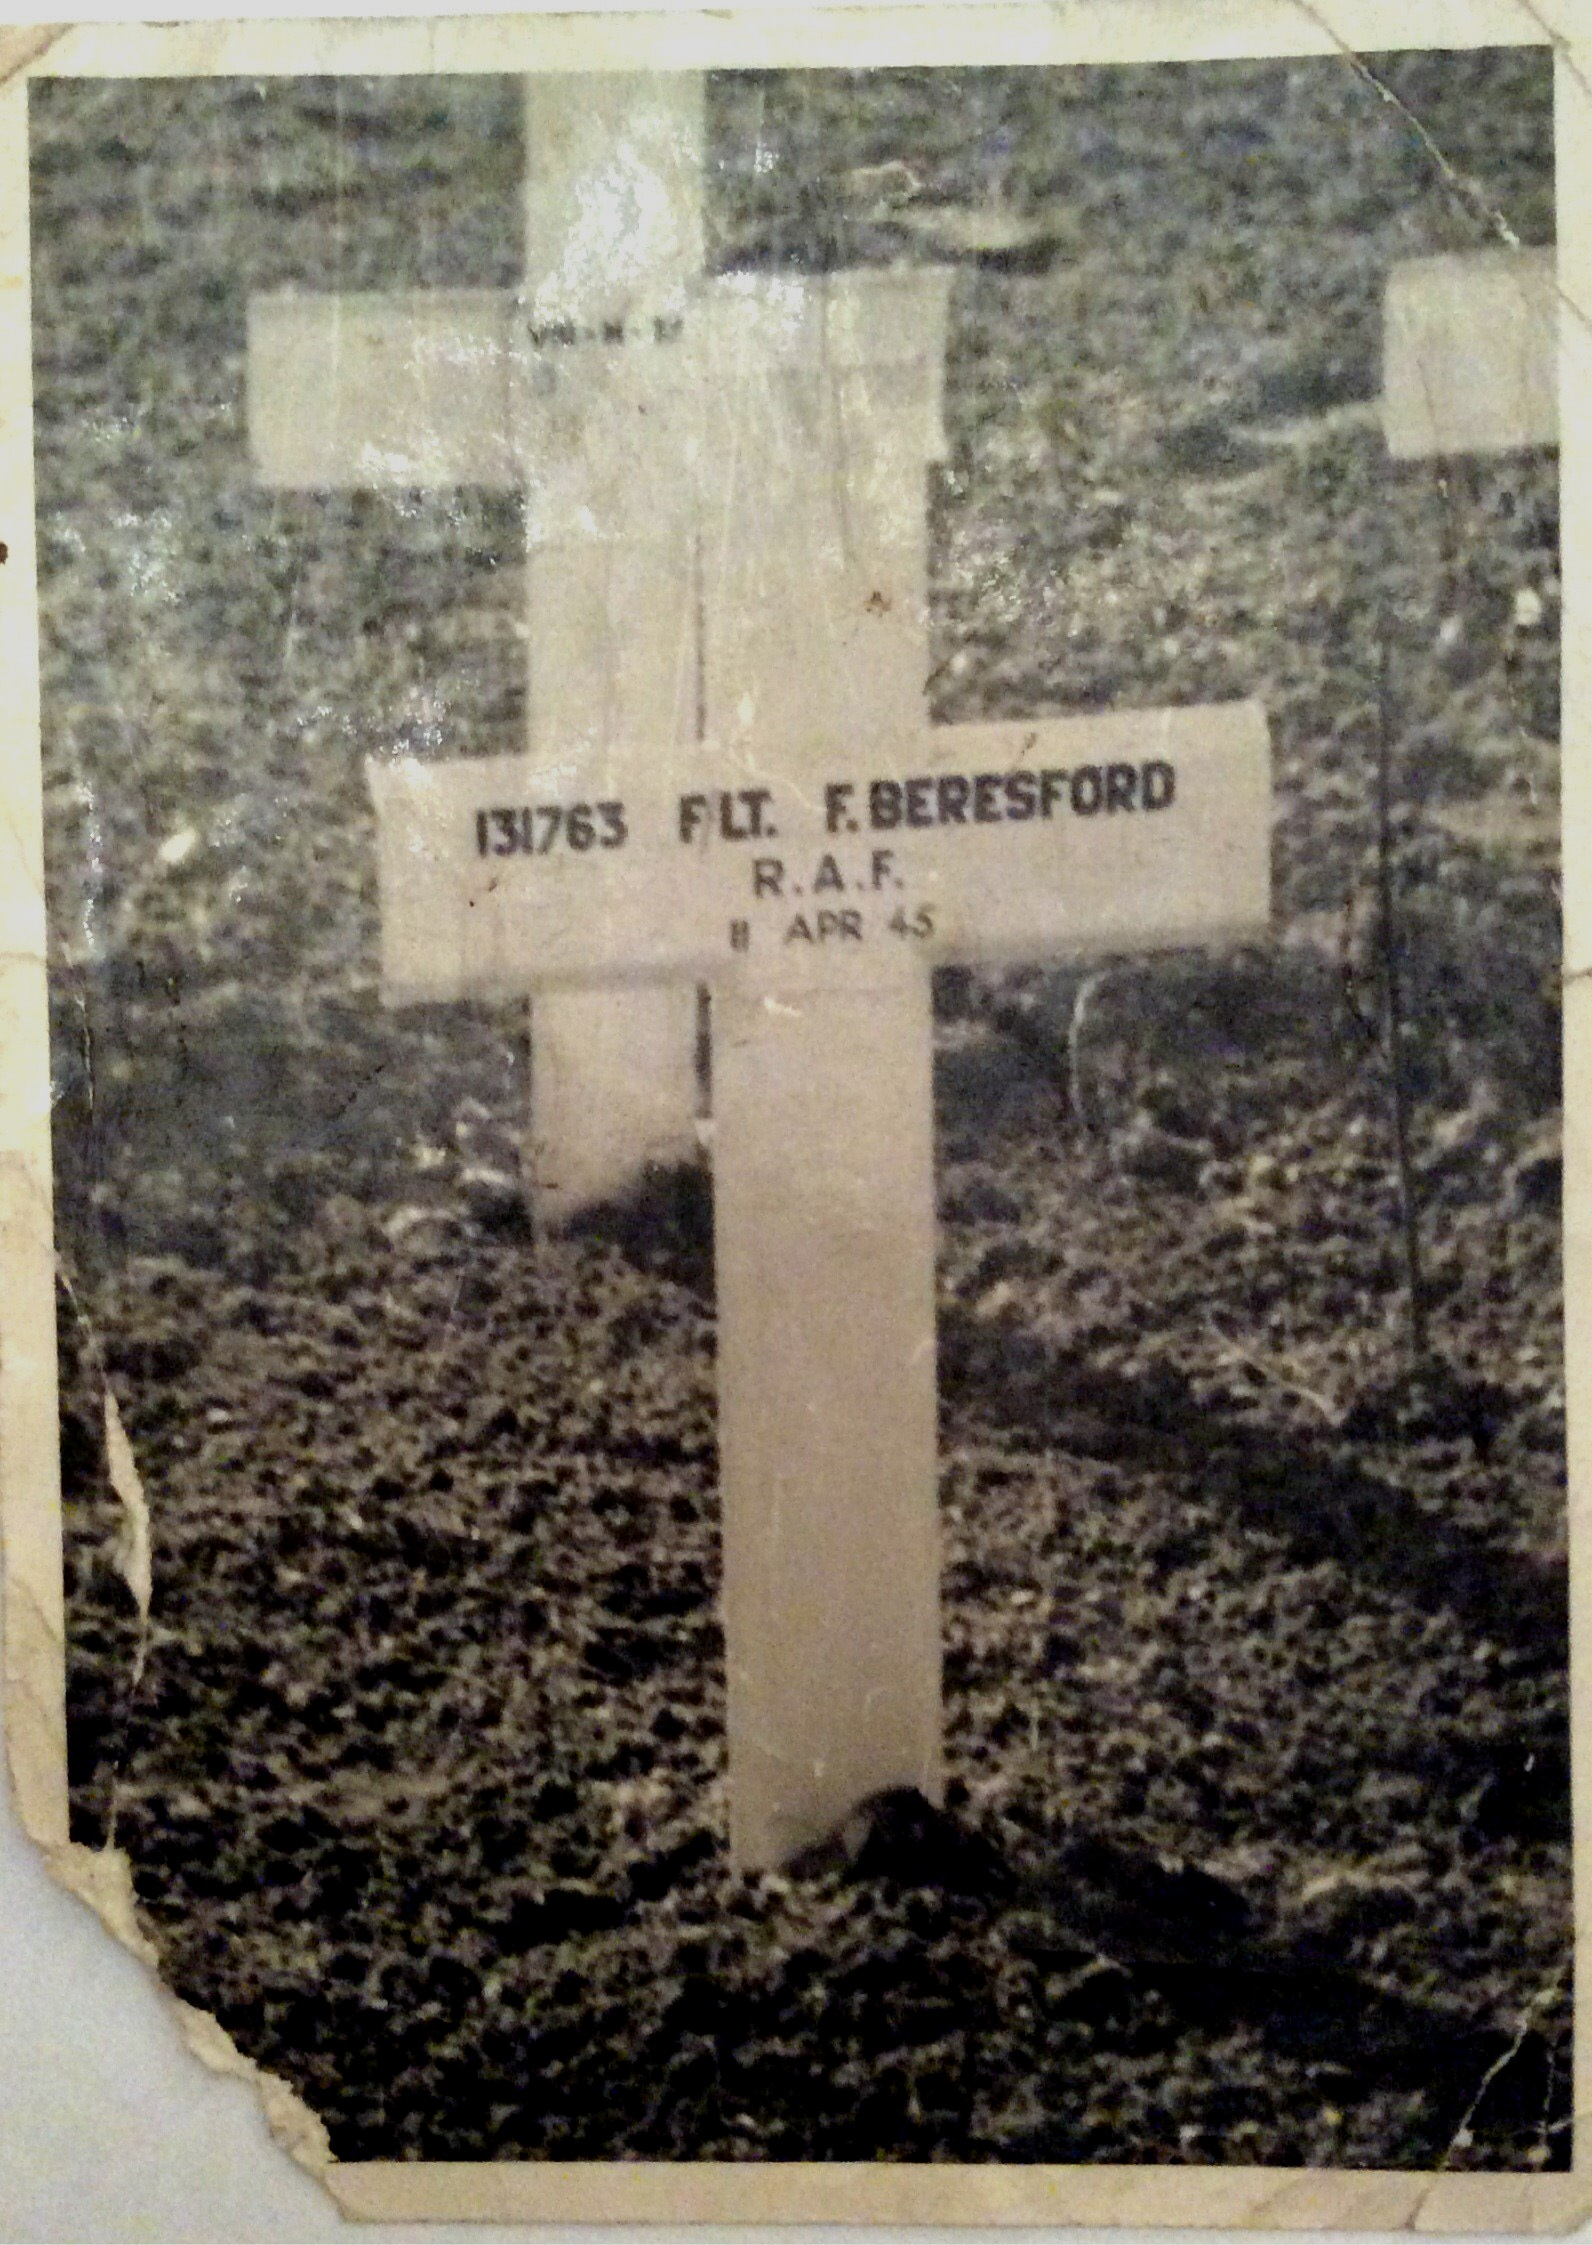 Photograph of the cross marking Frank Beresford's original grave